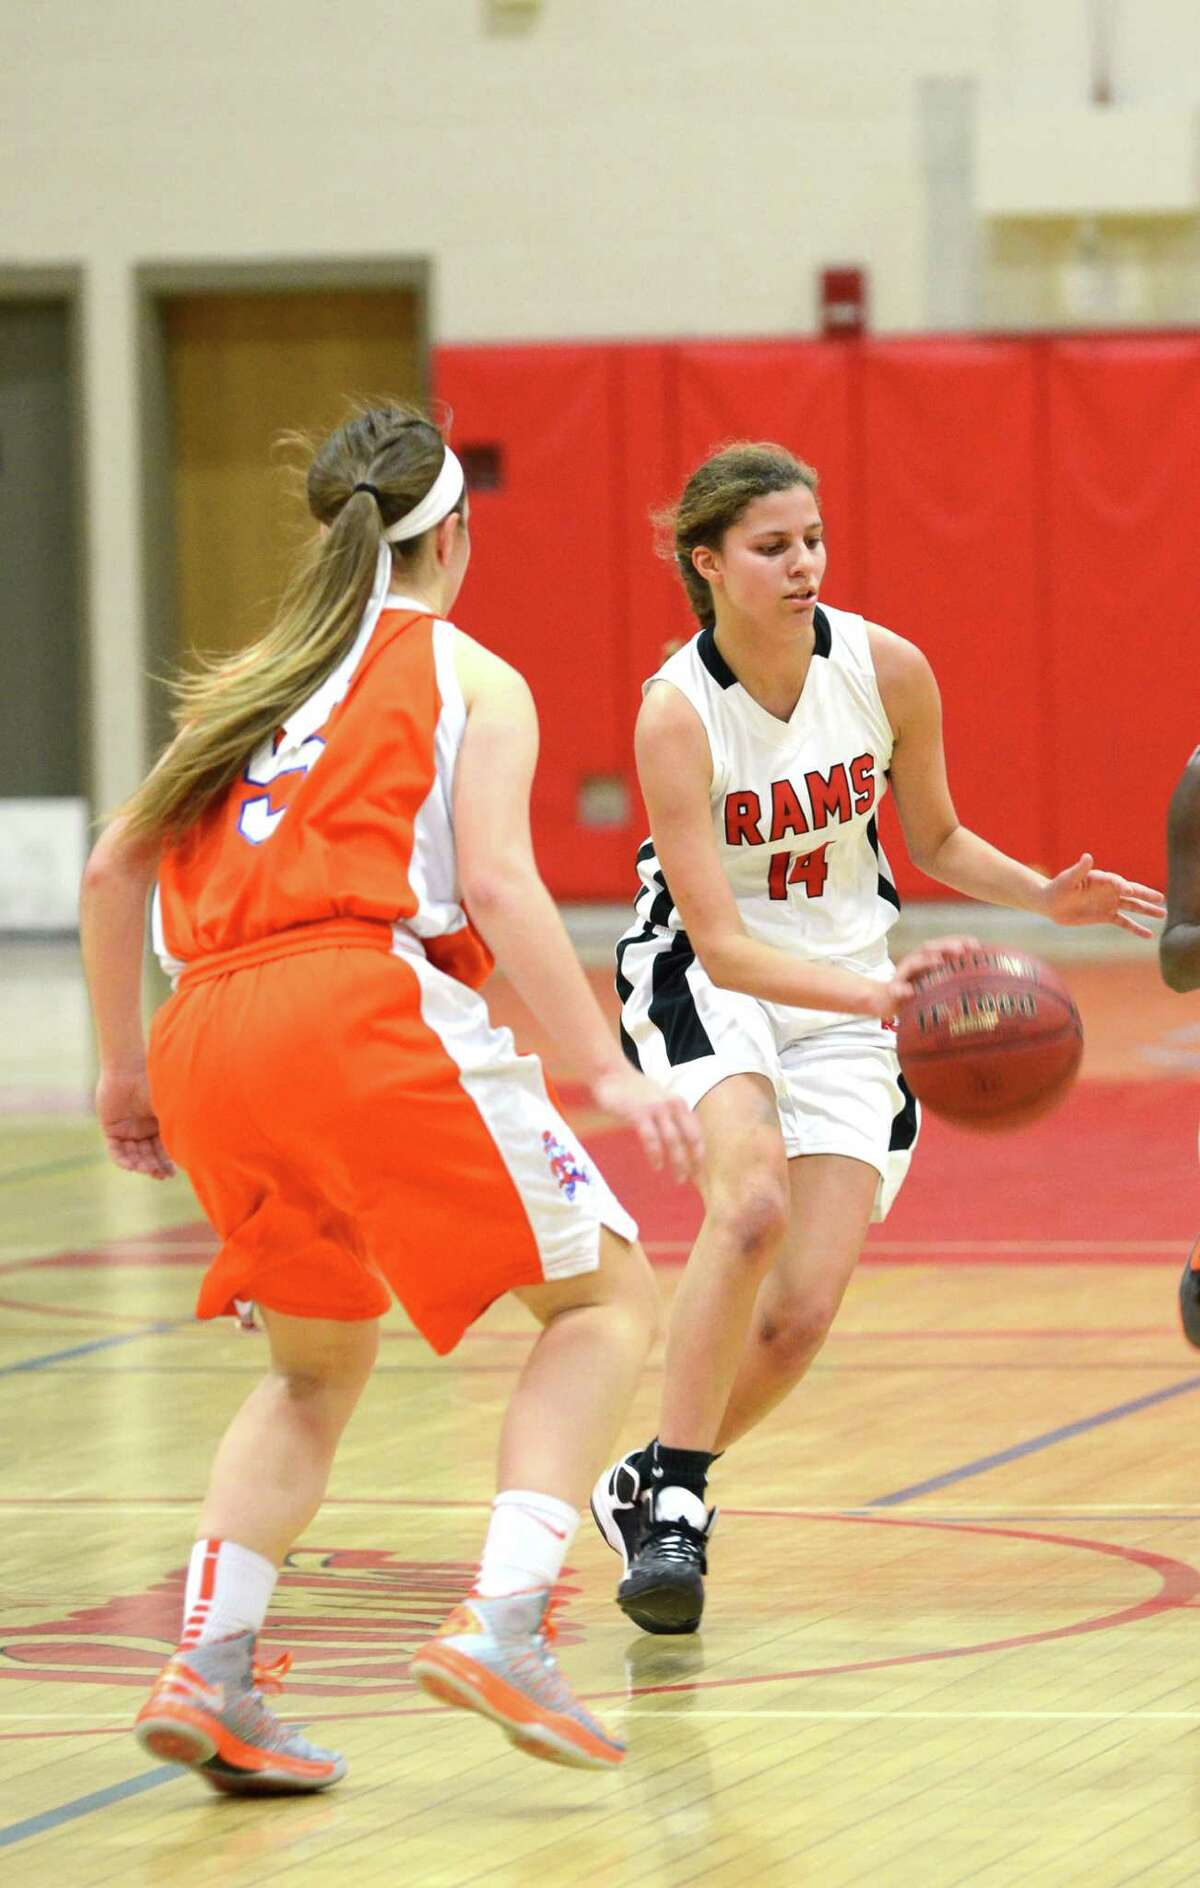 New Canaan's Colette Pellegrini (14) controls the ball as Danbury's Rachel Gartner (5) defends during the girls basketball game at New Canaan High School on Tuesday, Jan. 8, 2013.